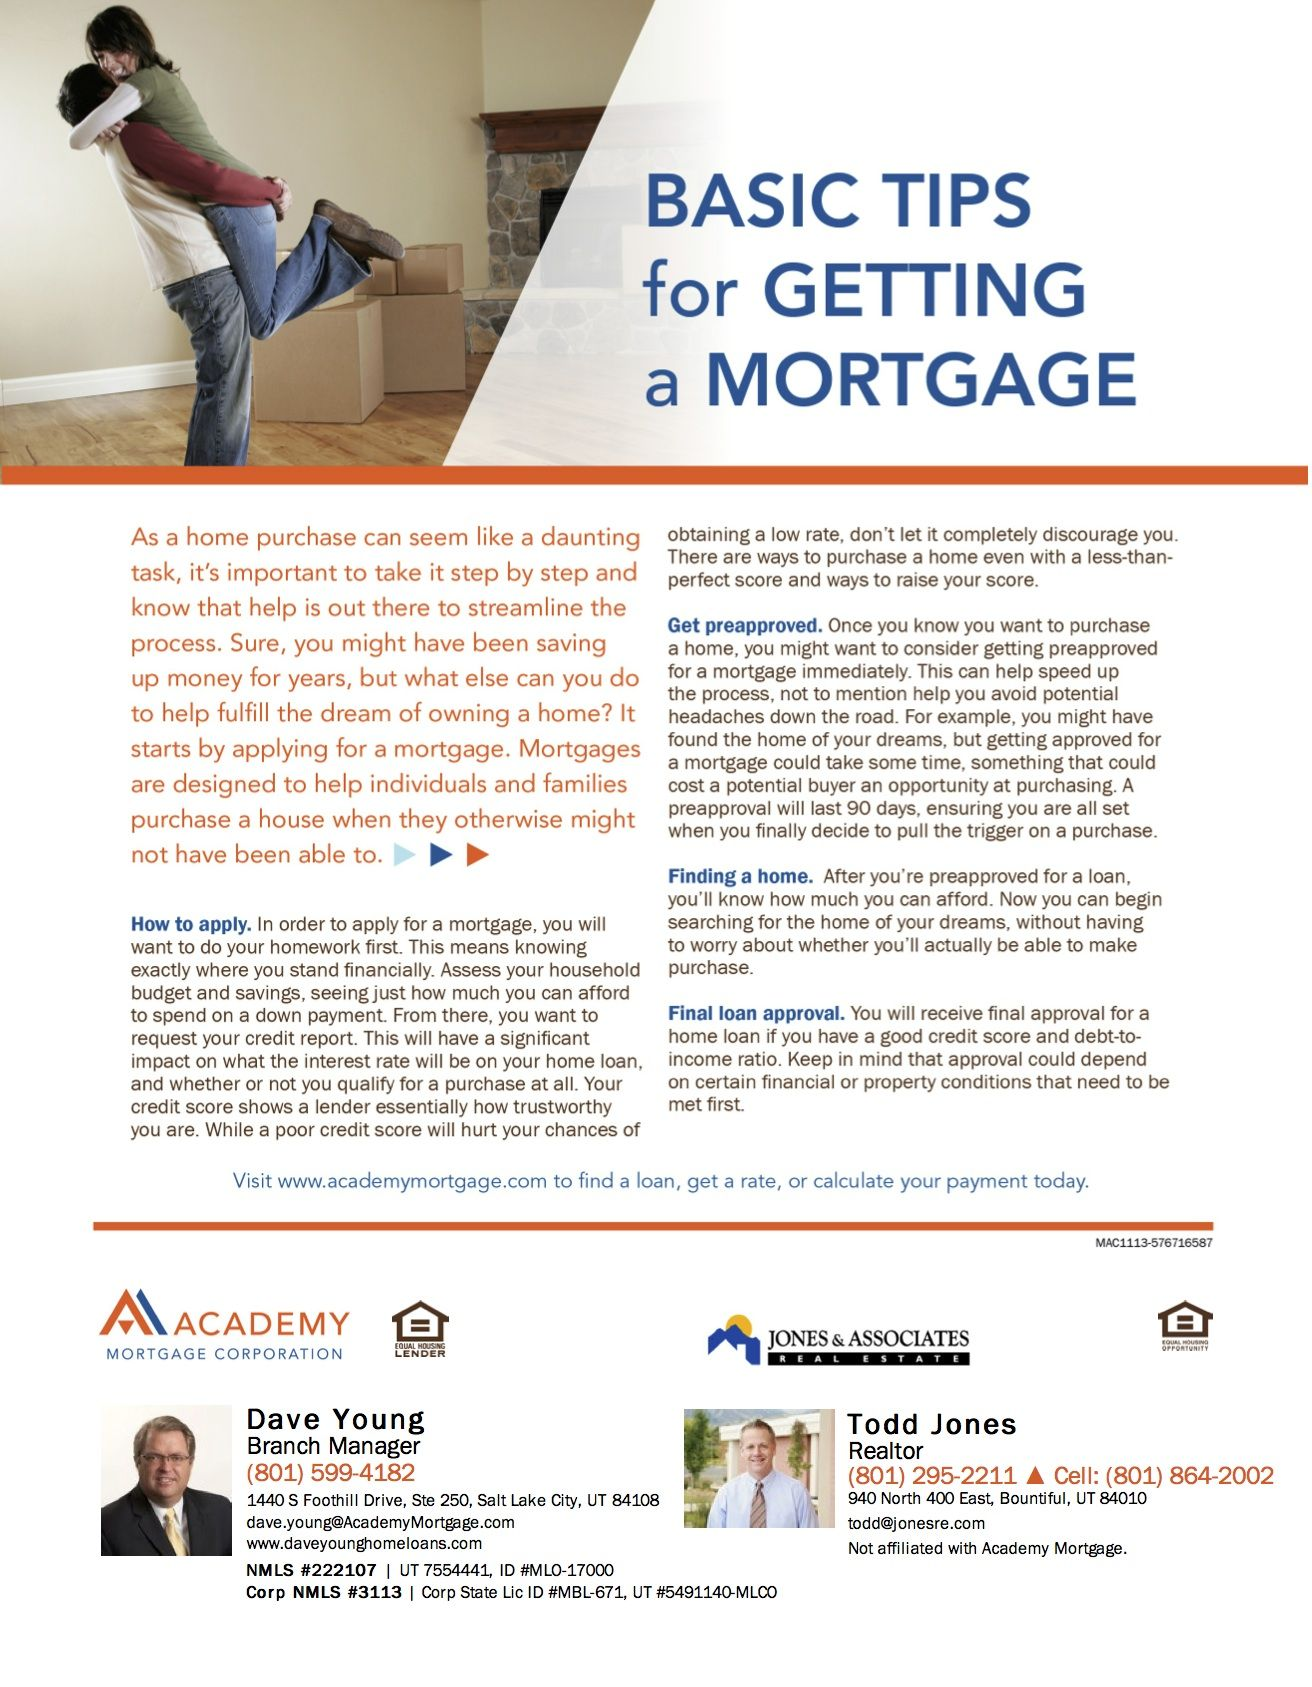 Outlines Basic Tips For Getting A Mortgage And Streamlining The Loan Process Loans For Bad Credit Buying First Home Tips